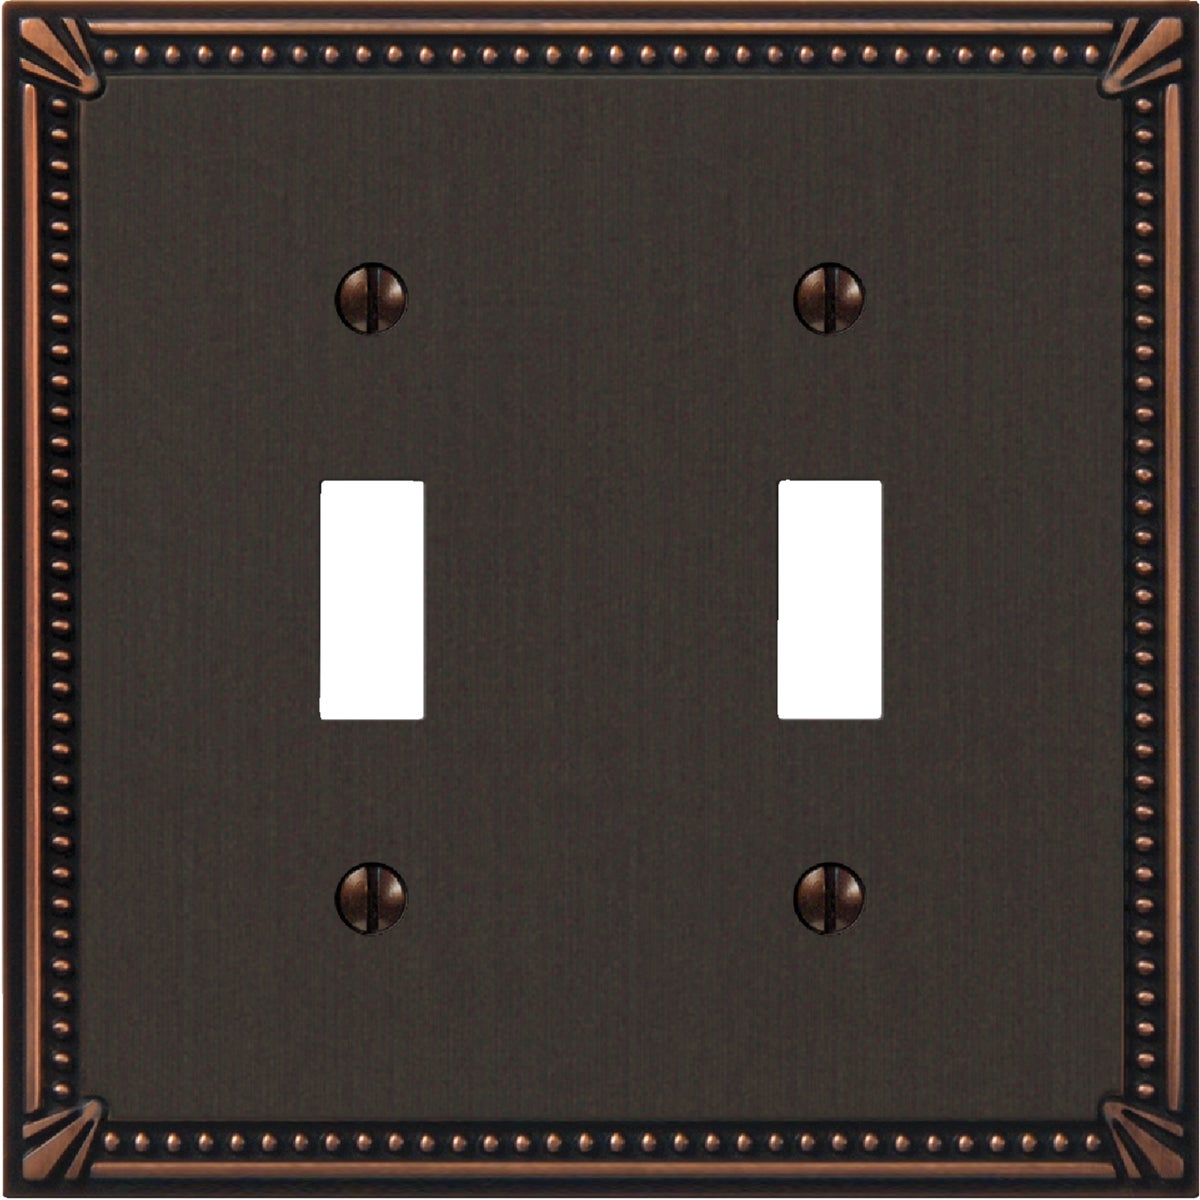 AB 2-TOGGLE WALLPLATE - 3002AZ by Jackson Deerfield Mf